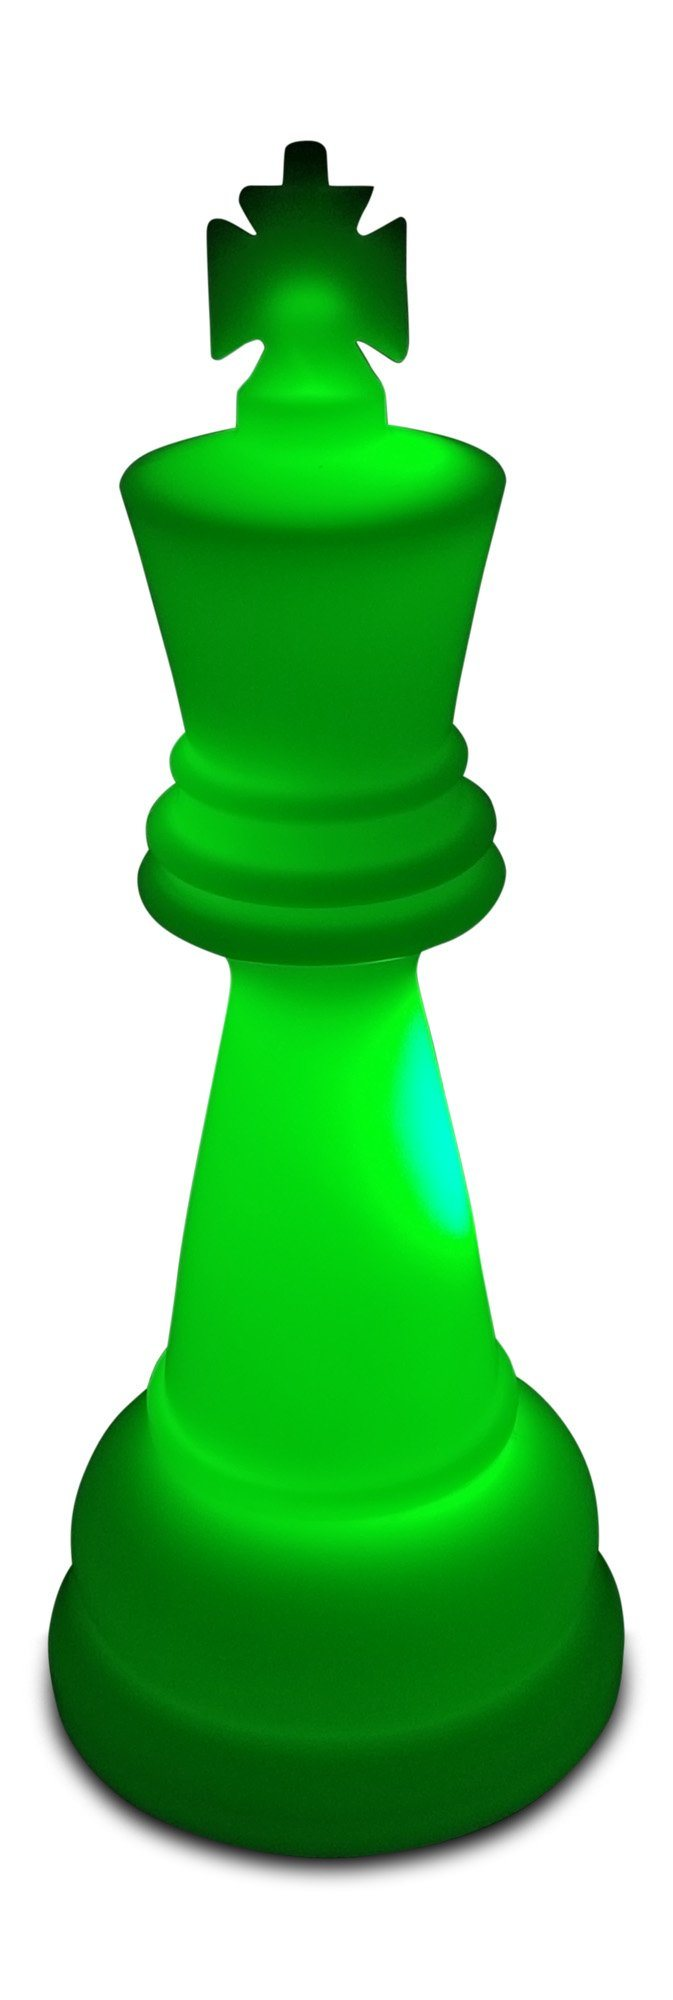 MegaChess 38 Inch Perfect King Light-Up Giant Chess Piece - Green | Default Title | MegaChess.com